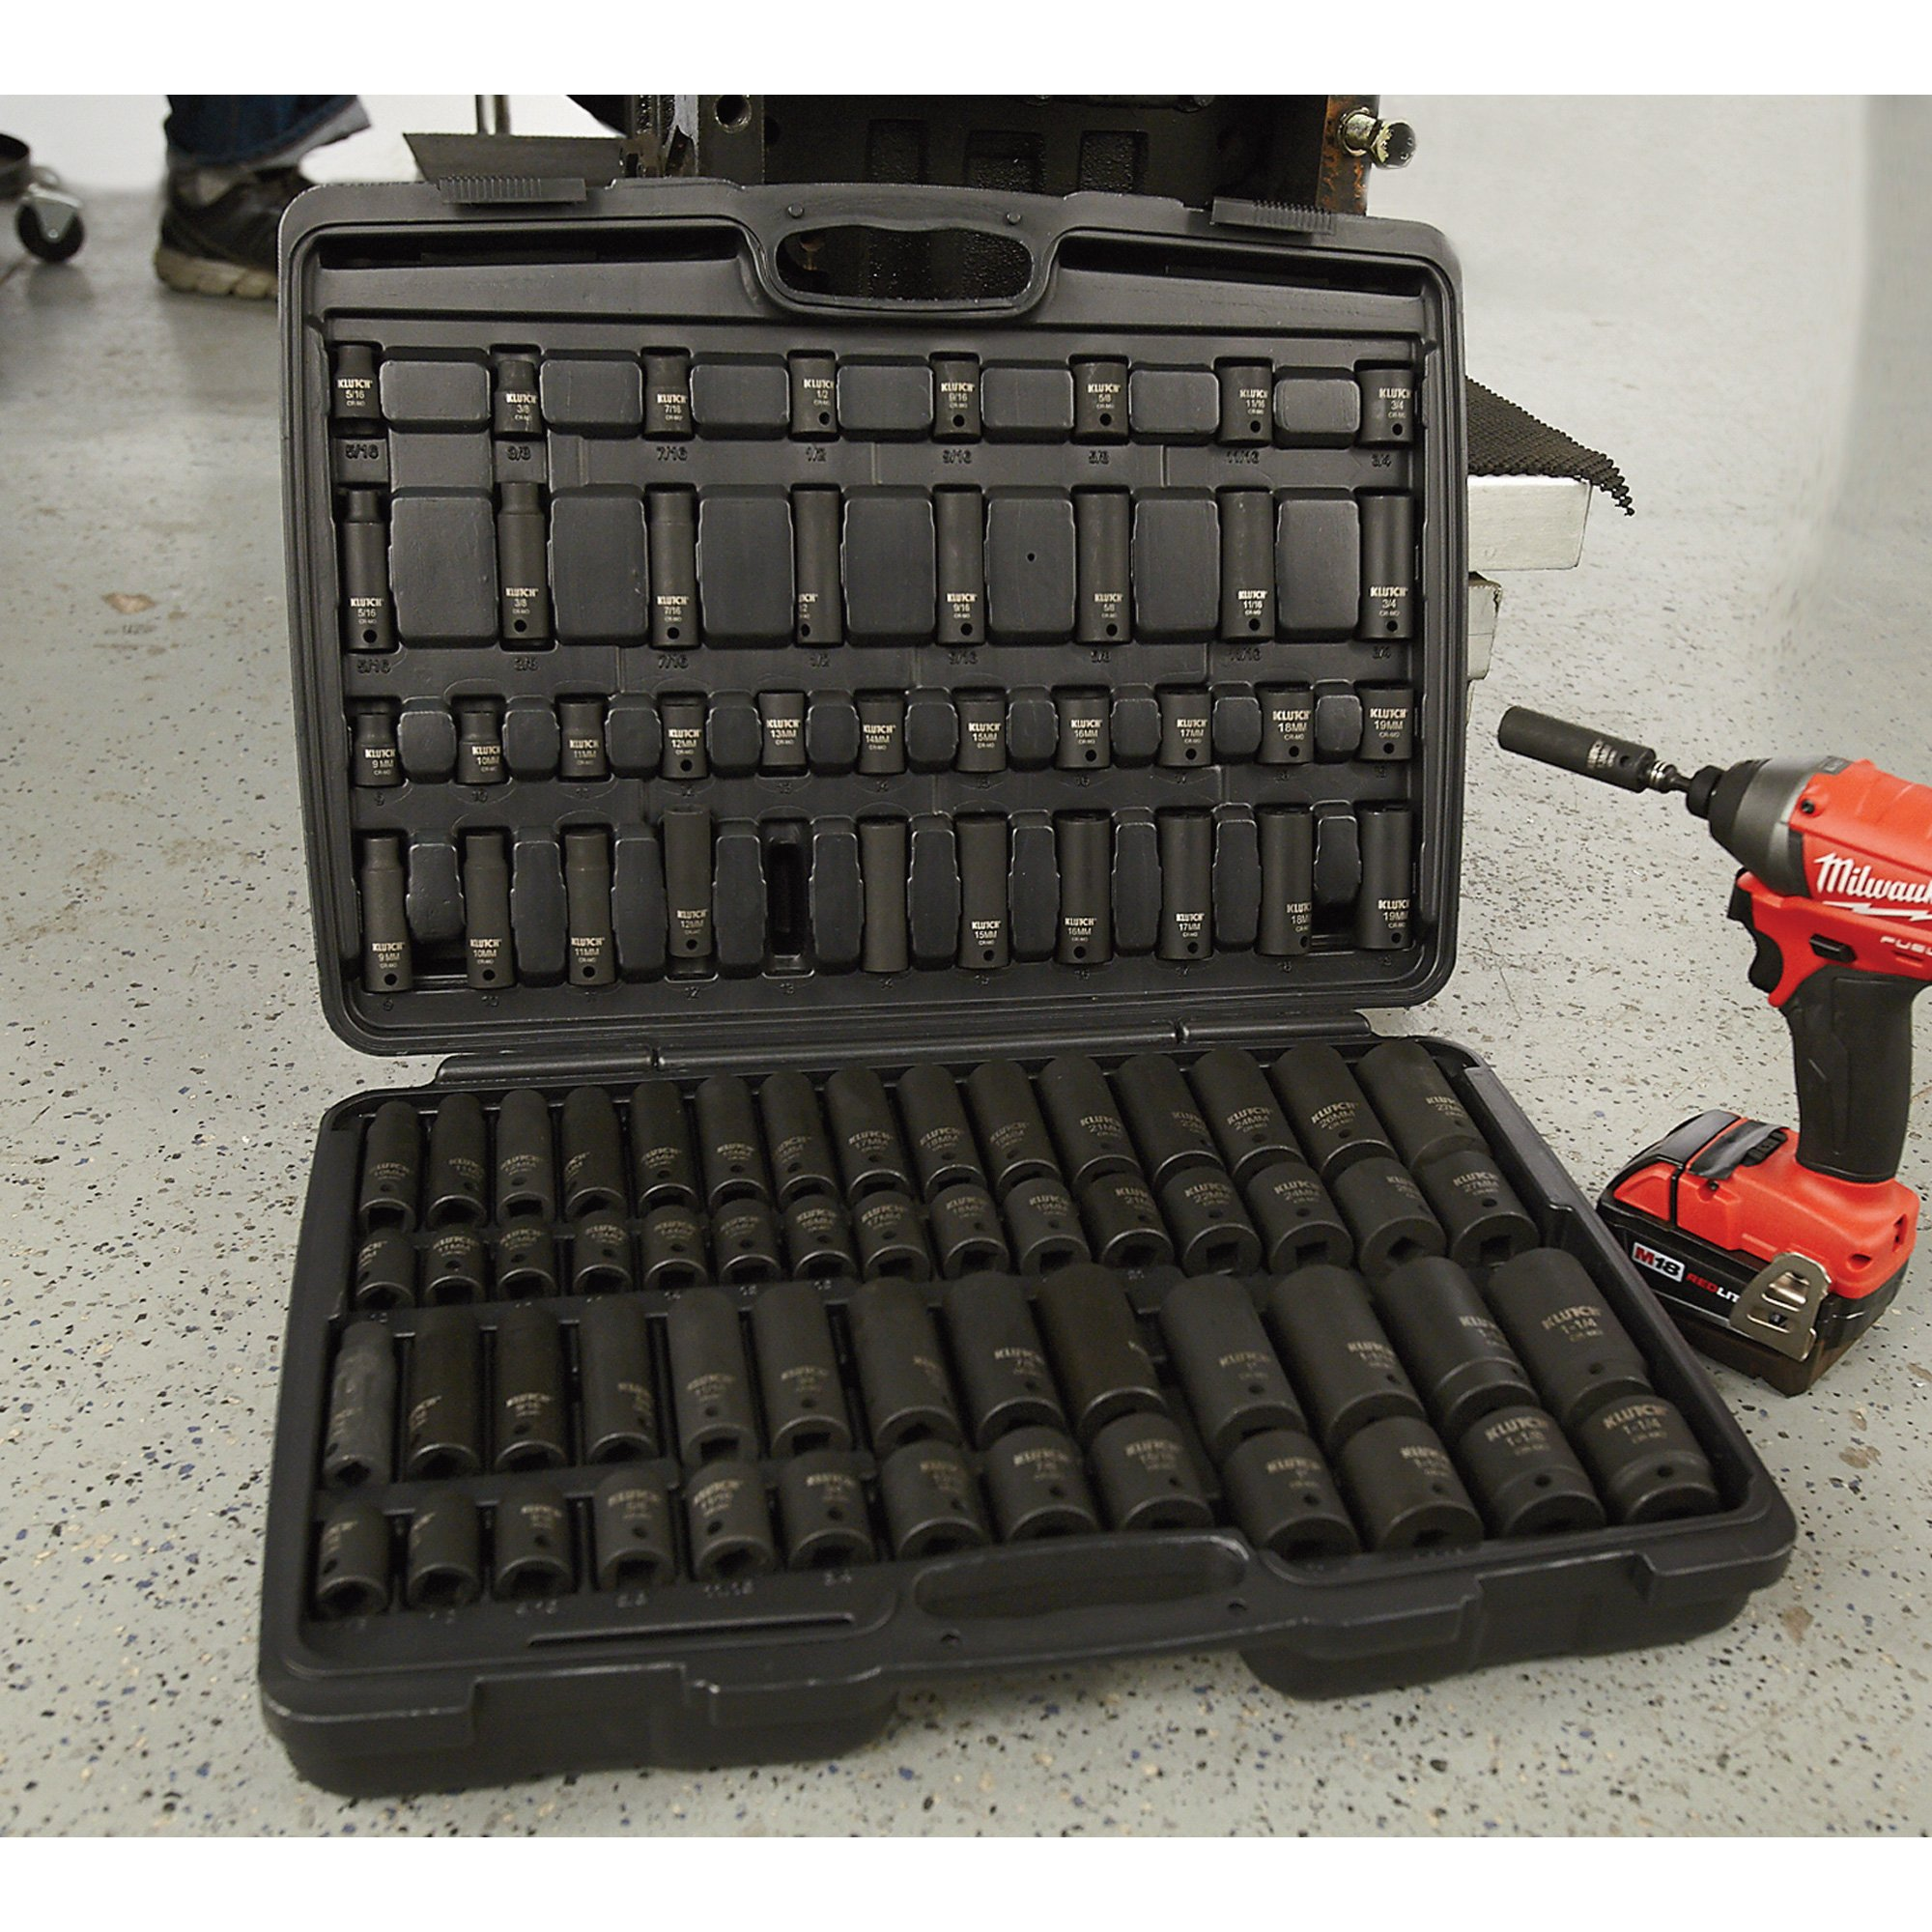 Klutch Impact Socket Set - 94-Pc, 3/8in.- & 1/2in.-Drive by Klutch (Image #4)